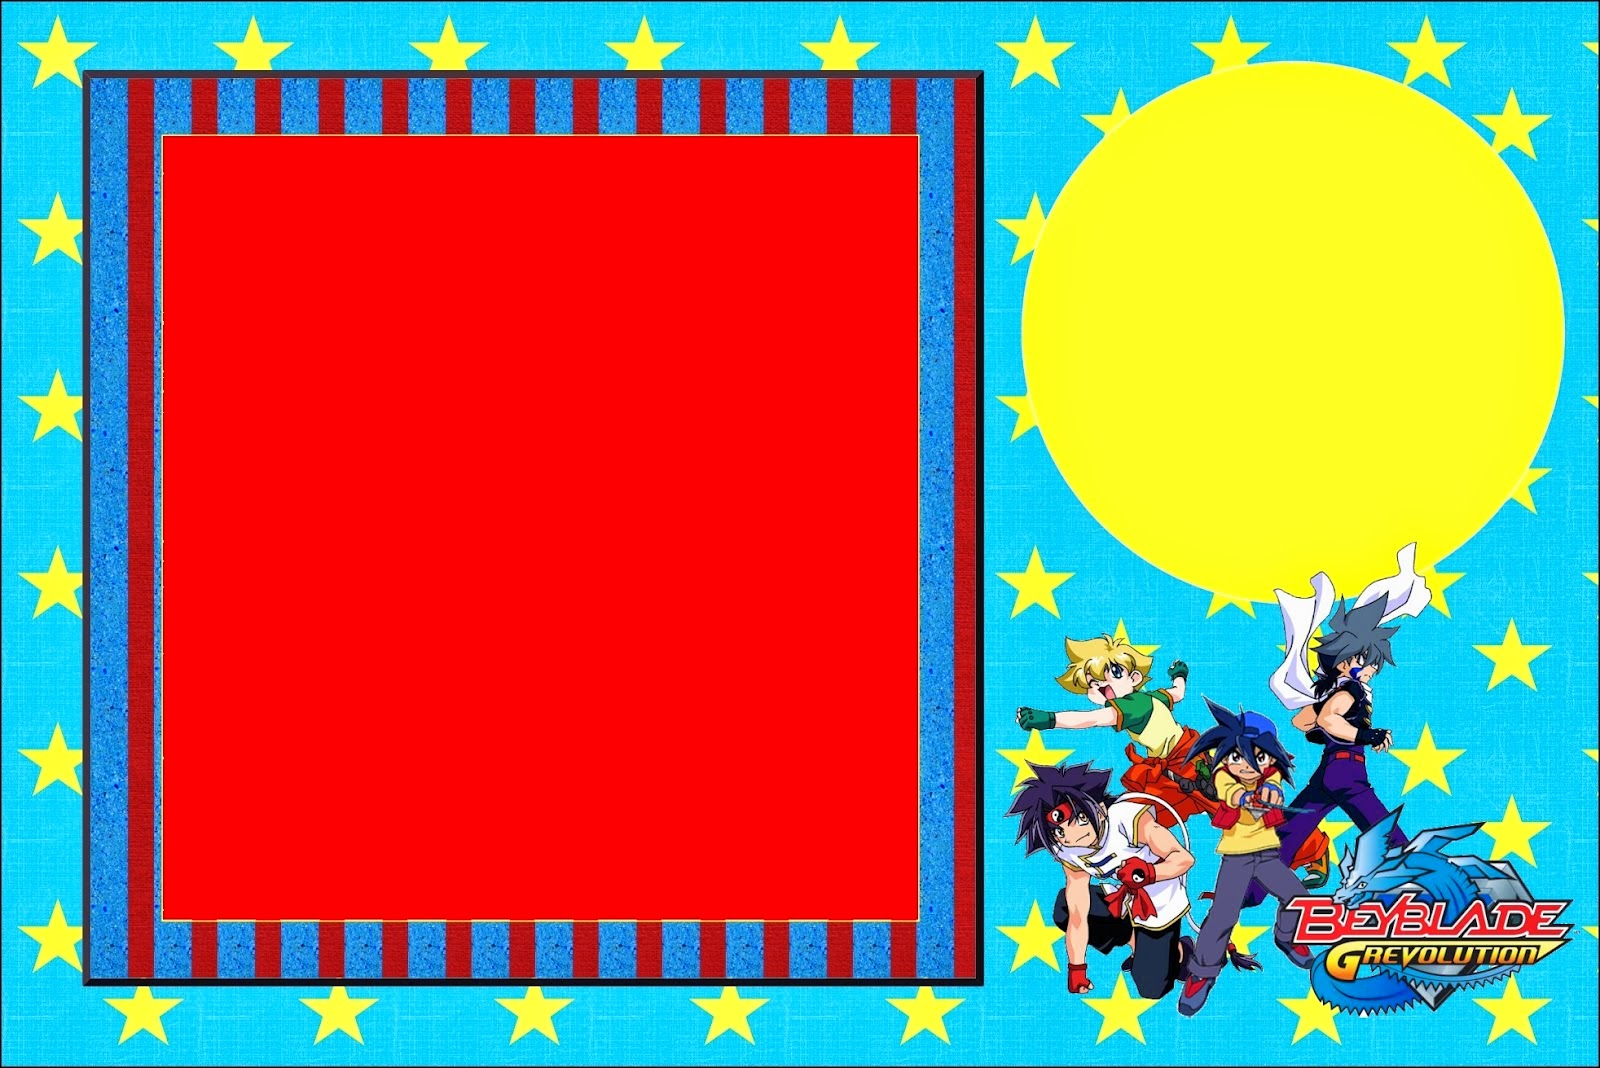 beyblade printable invitations oh my fiesta for geeks beyblade printable invitations cards or backgrounds